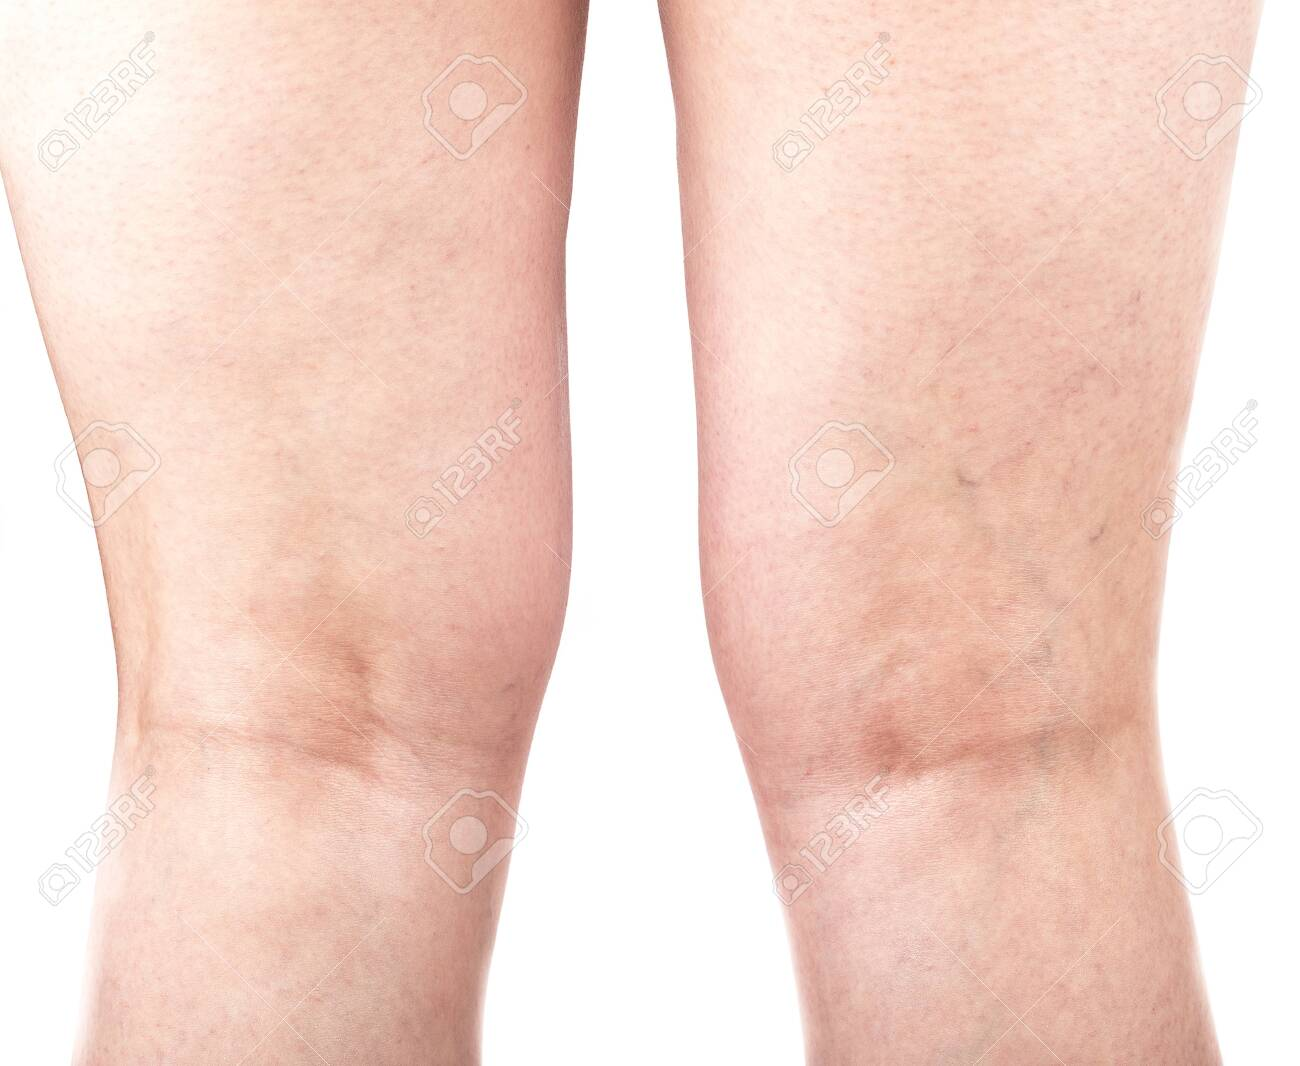 Female legs with varicose veins on the back of the legs. Healthy lifestyle. - 150021583